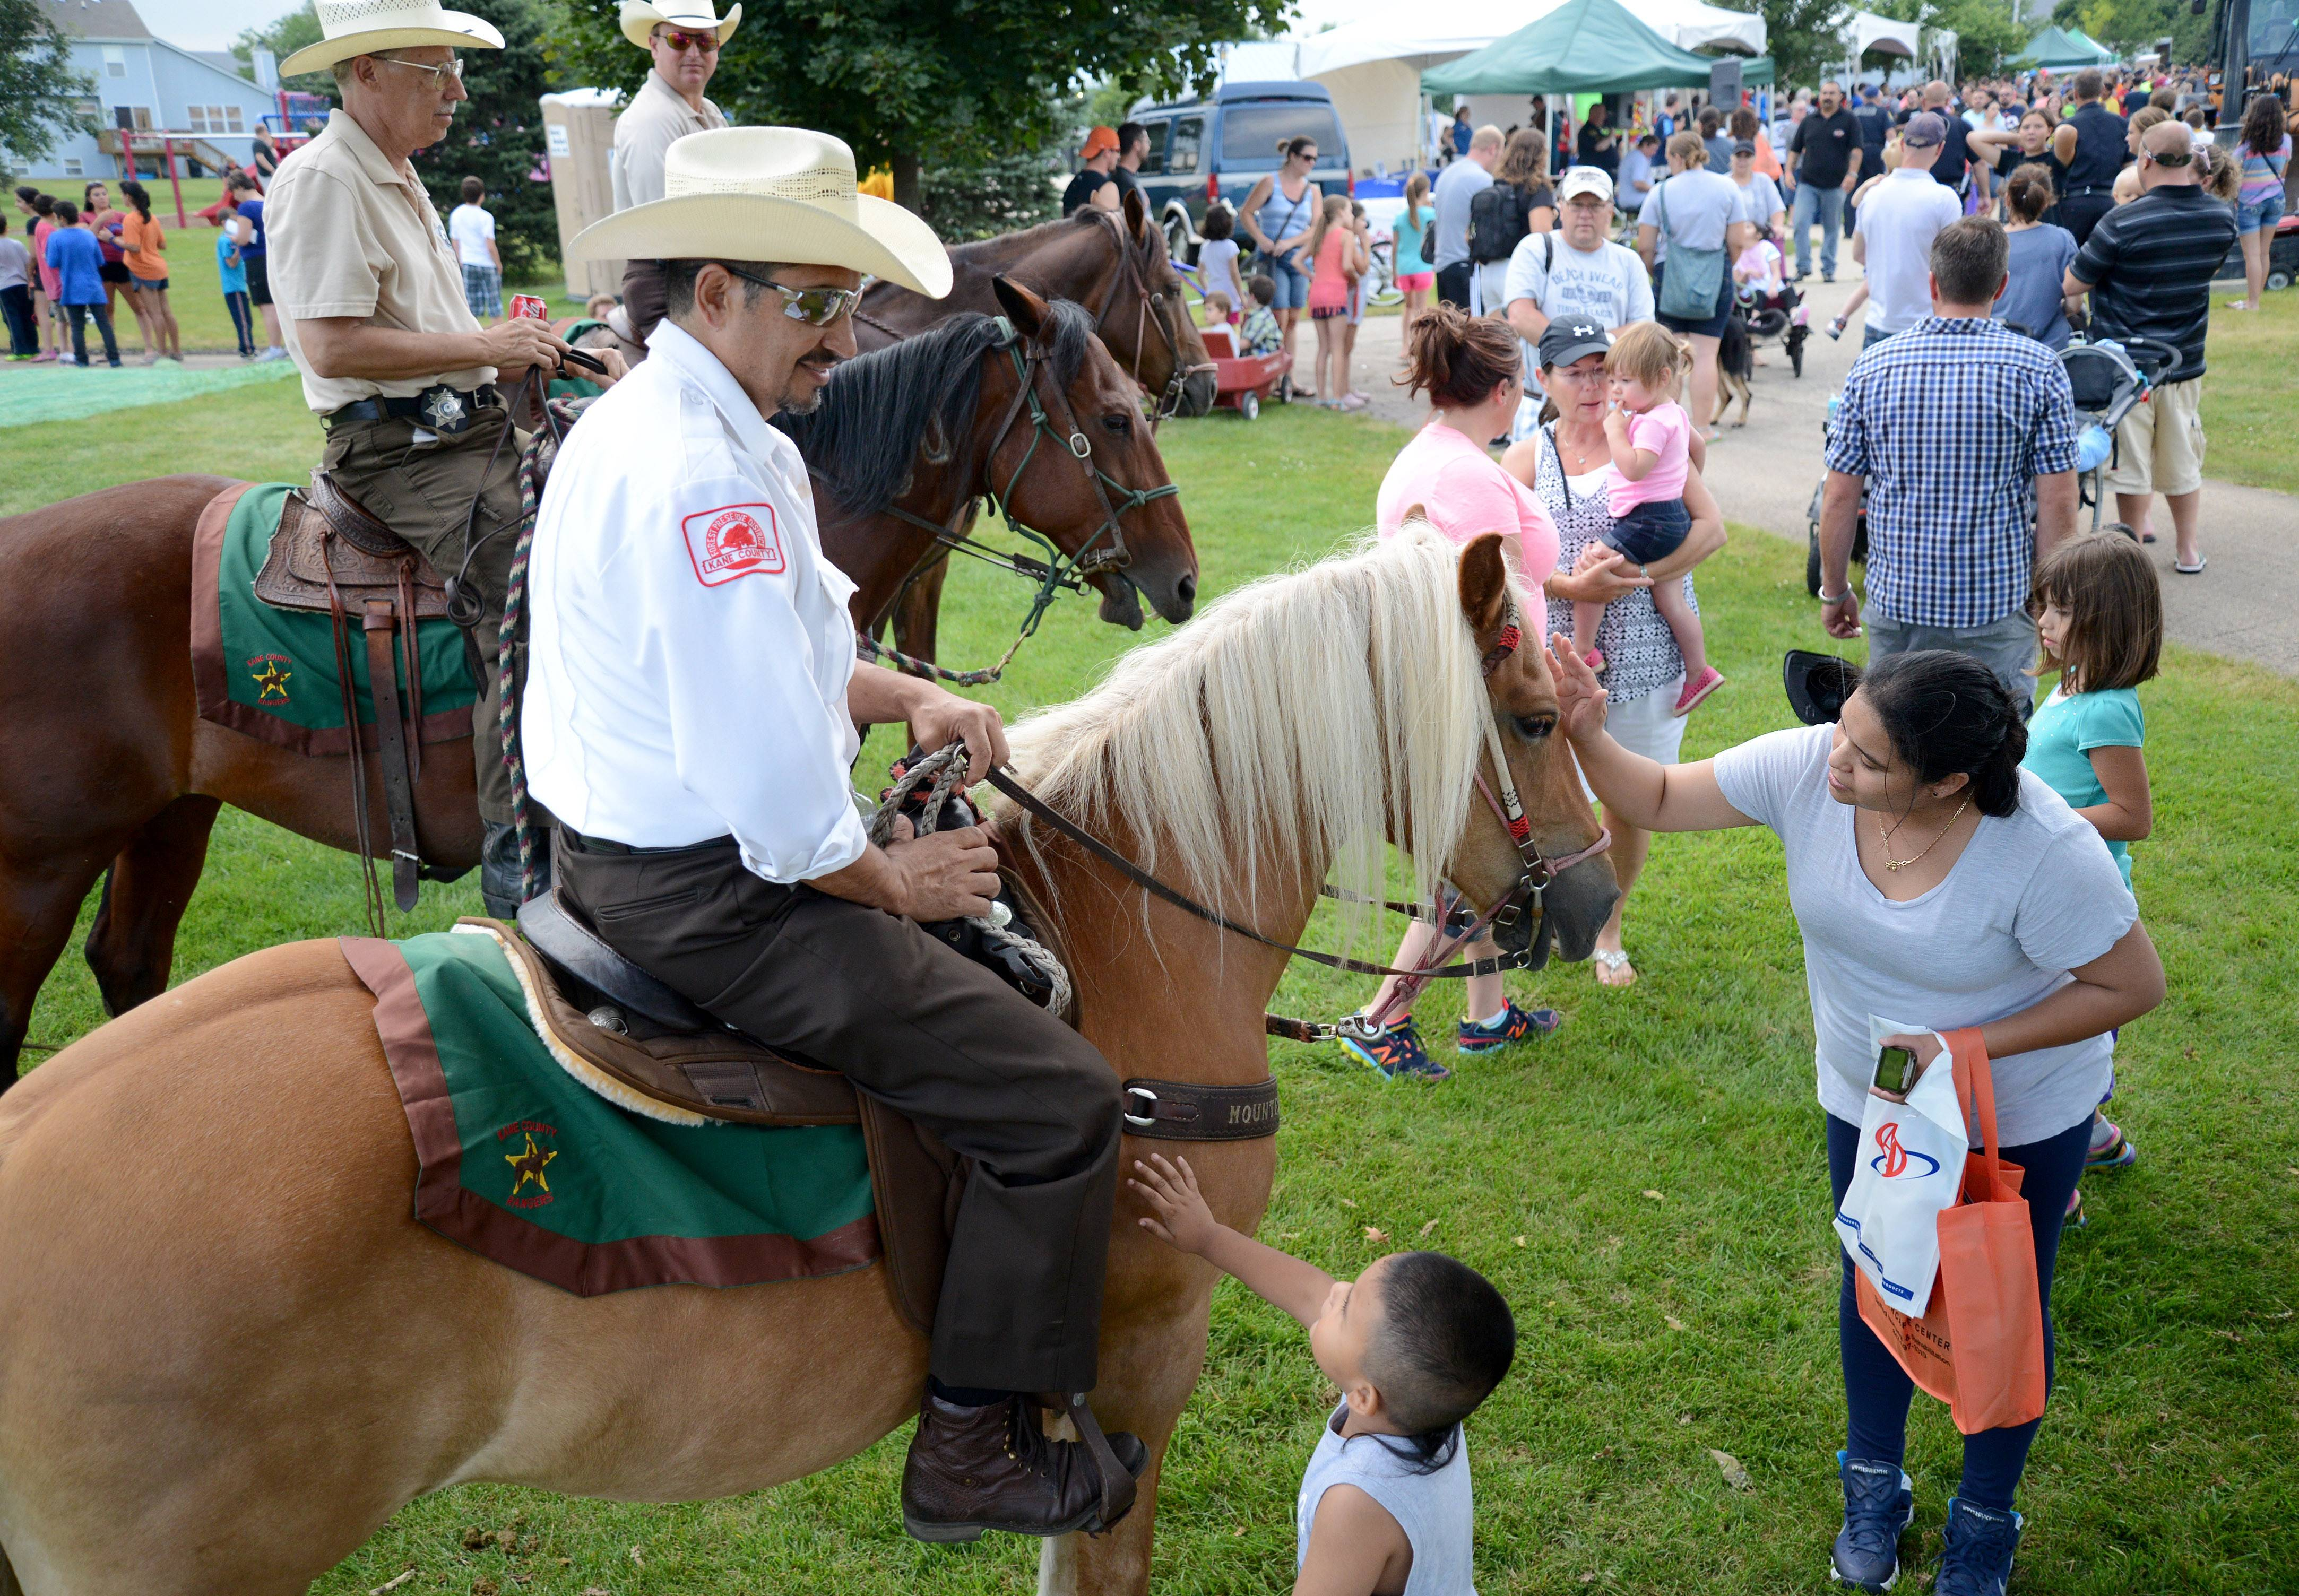 Juan Jasso, 3, and his mother, Jesusita Enriquez, meet Kane County Mounted Ranger Cuper Quintana of Aurora and his horse, Summer, at South Elgin's National Night Out event at Jim Hansen Park on Tuesday night. The mother and son have been coming to the event for three years, and she says seeing the horses is always Juan's first stop at the event. Quintana has been a ranger for eight years.